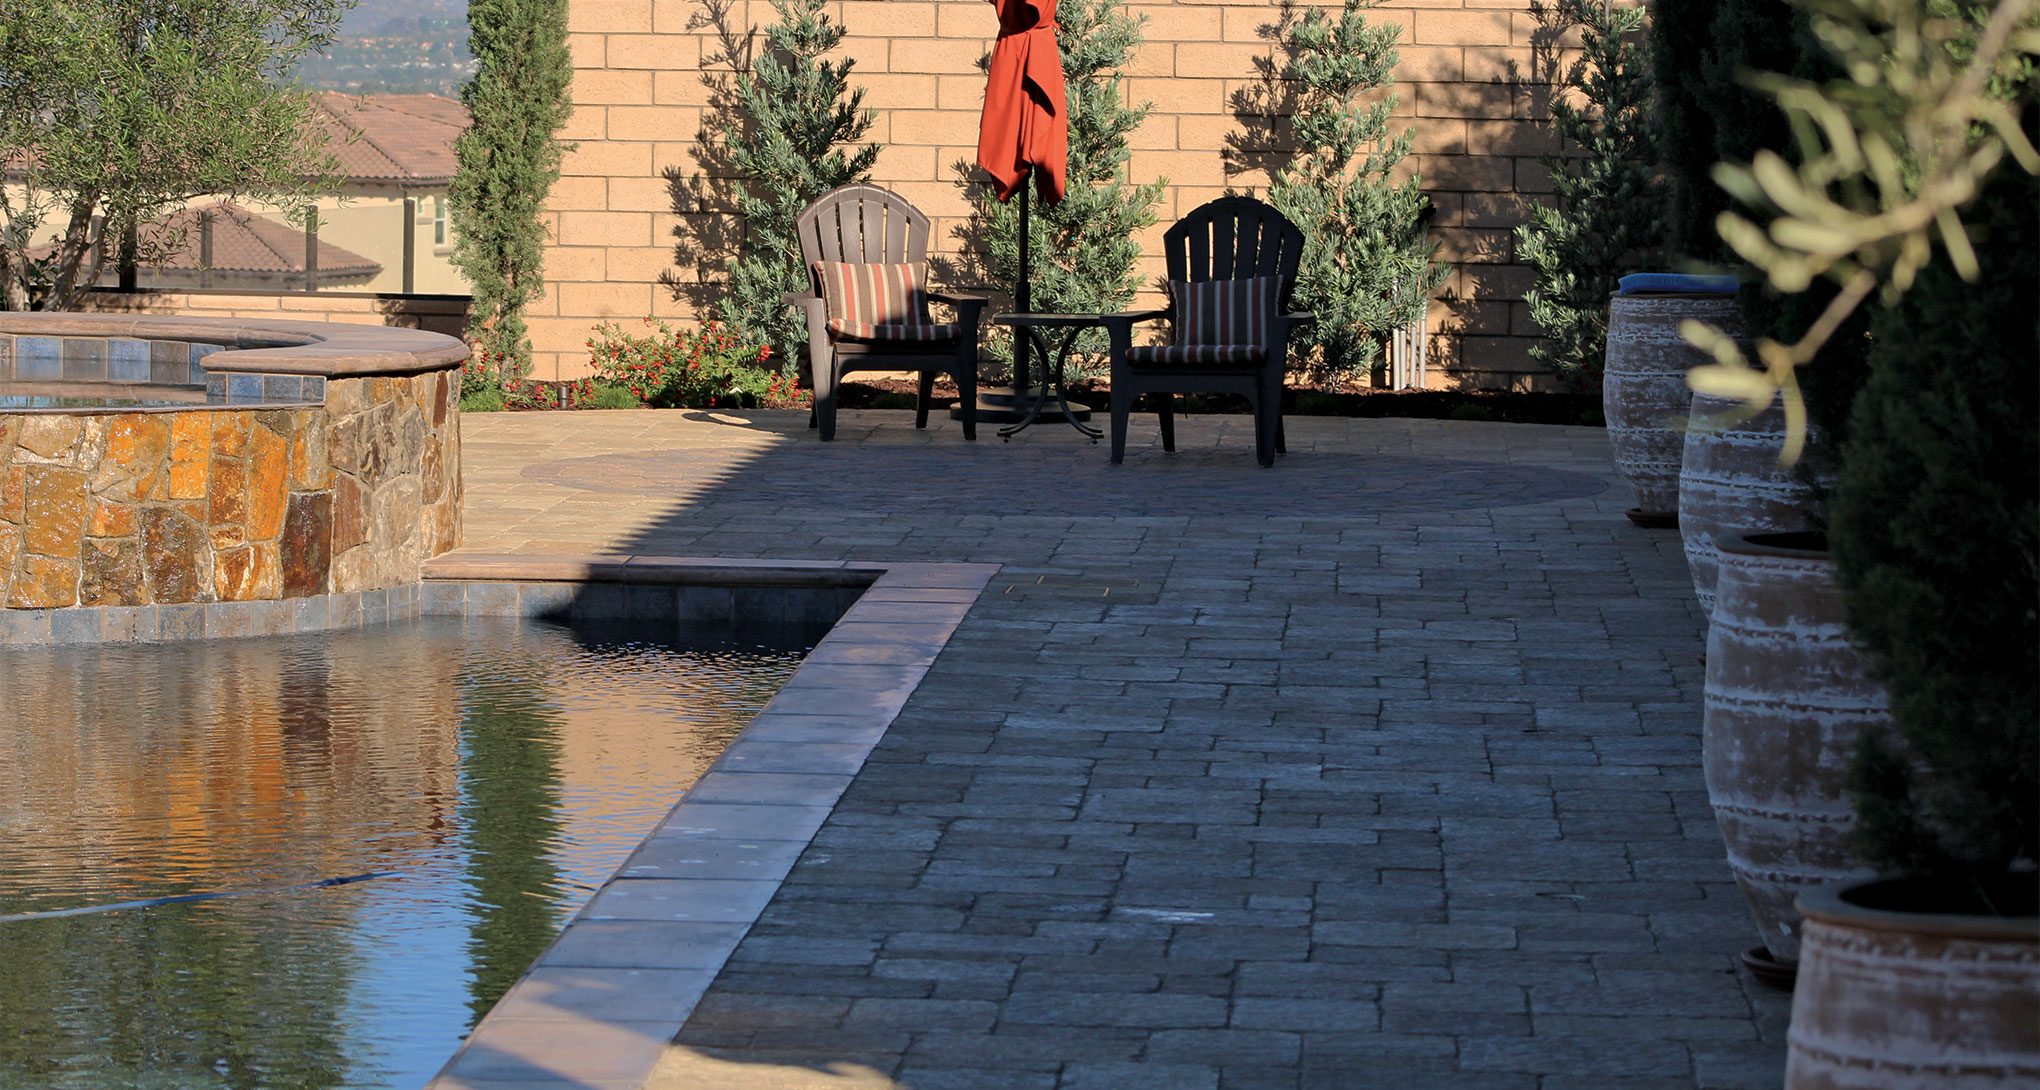 Panjia – San Diego: Artificial Grass | Pavers | Outdoor Living